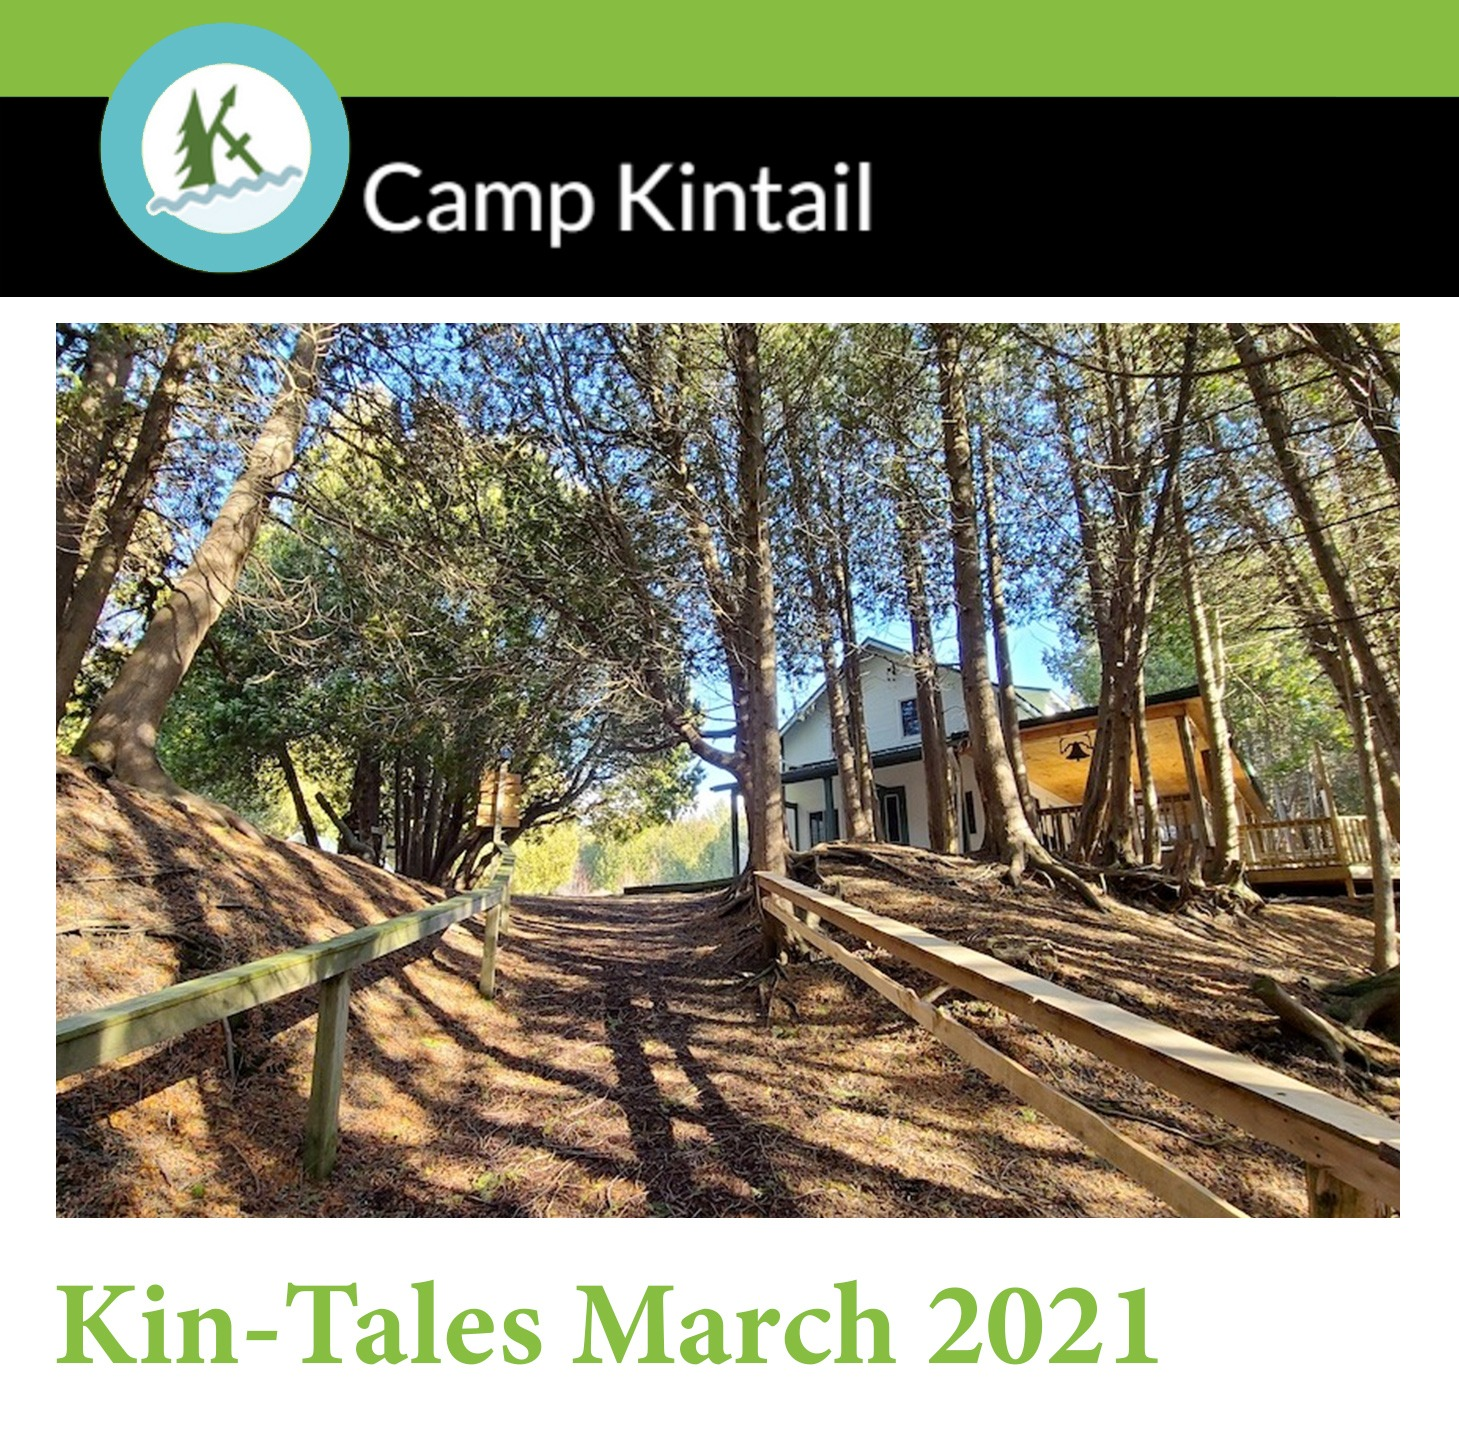 Title Text: Kin-Tales March 2021. Image: Forest with warm sunlight.